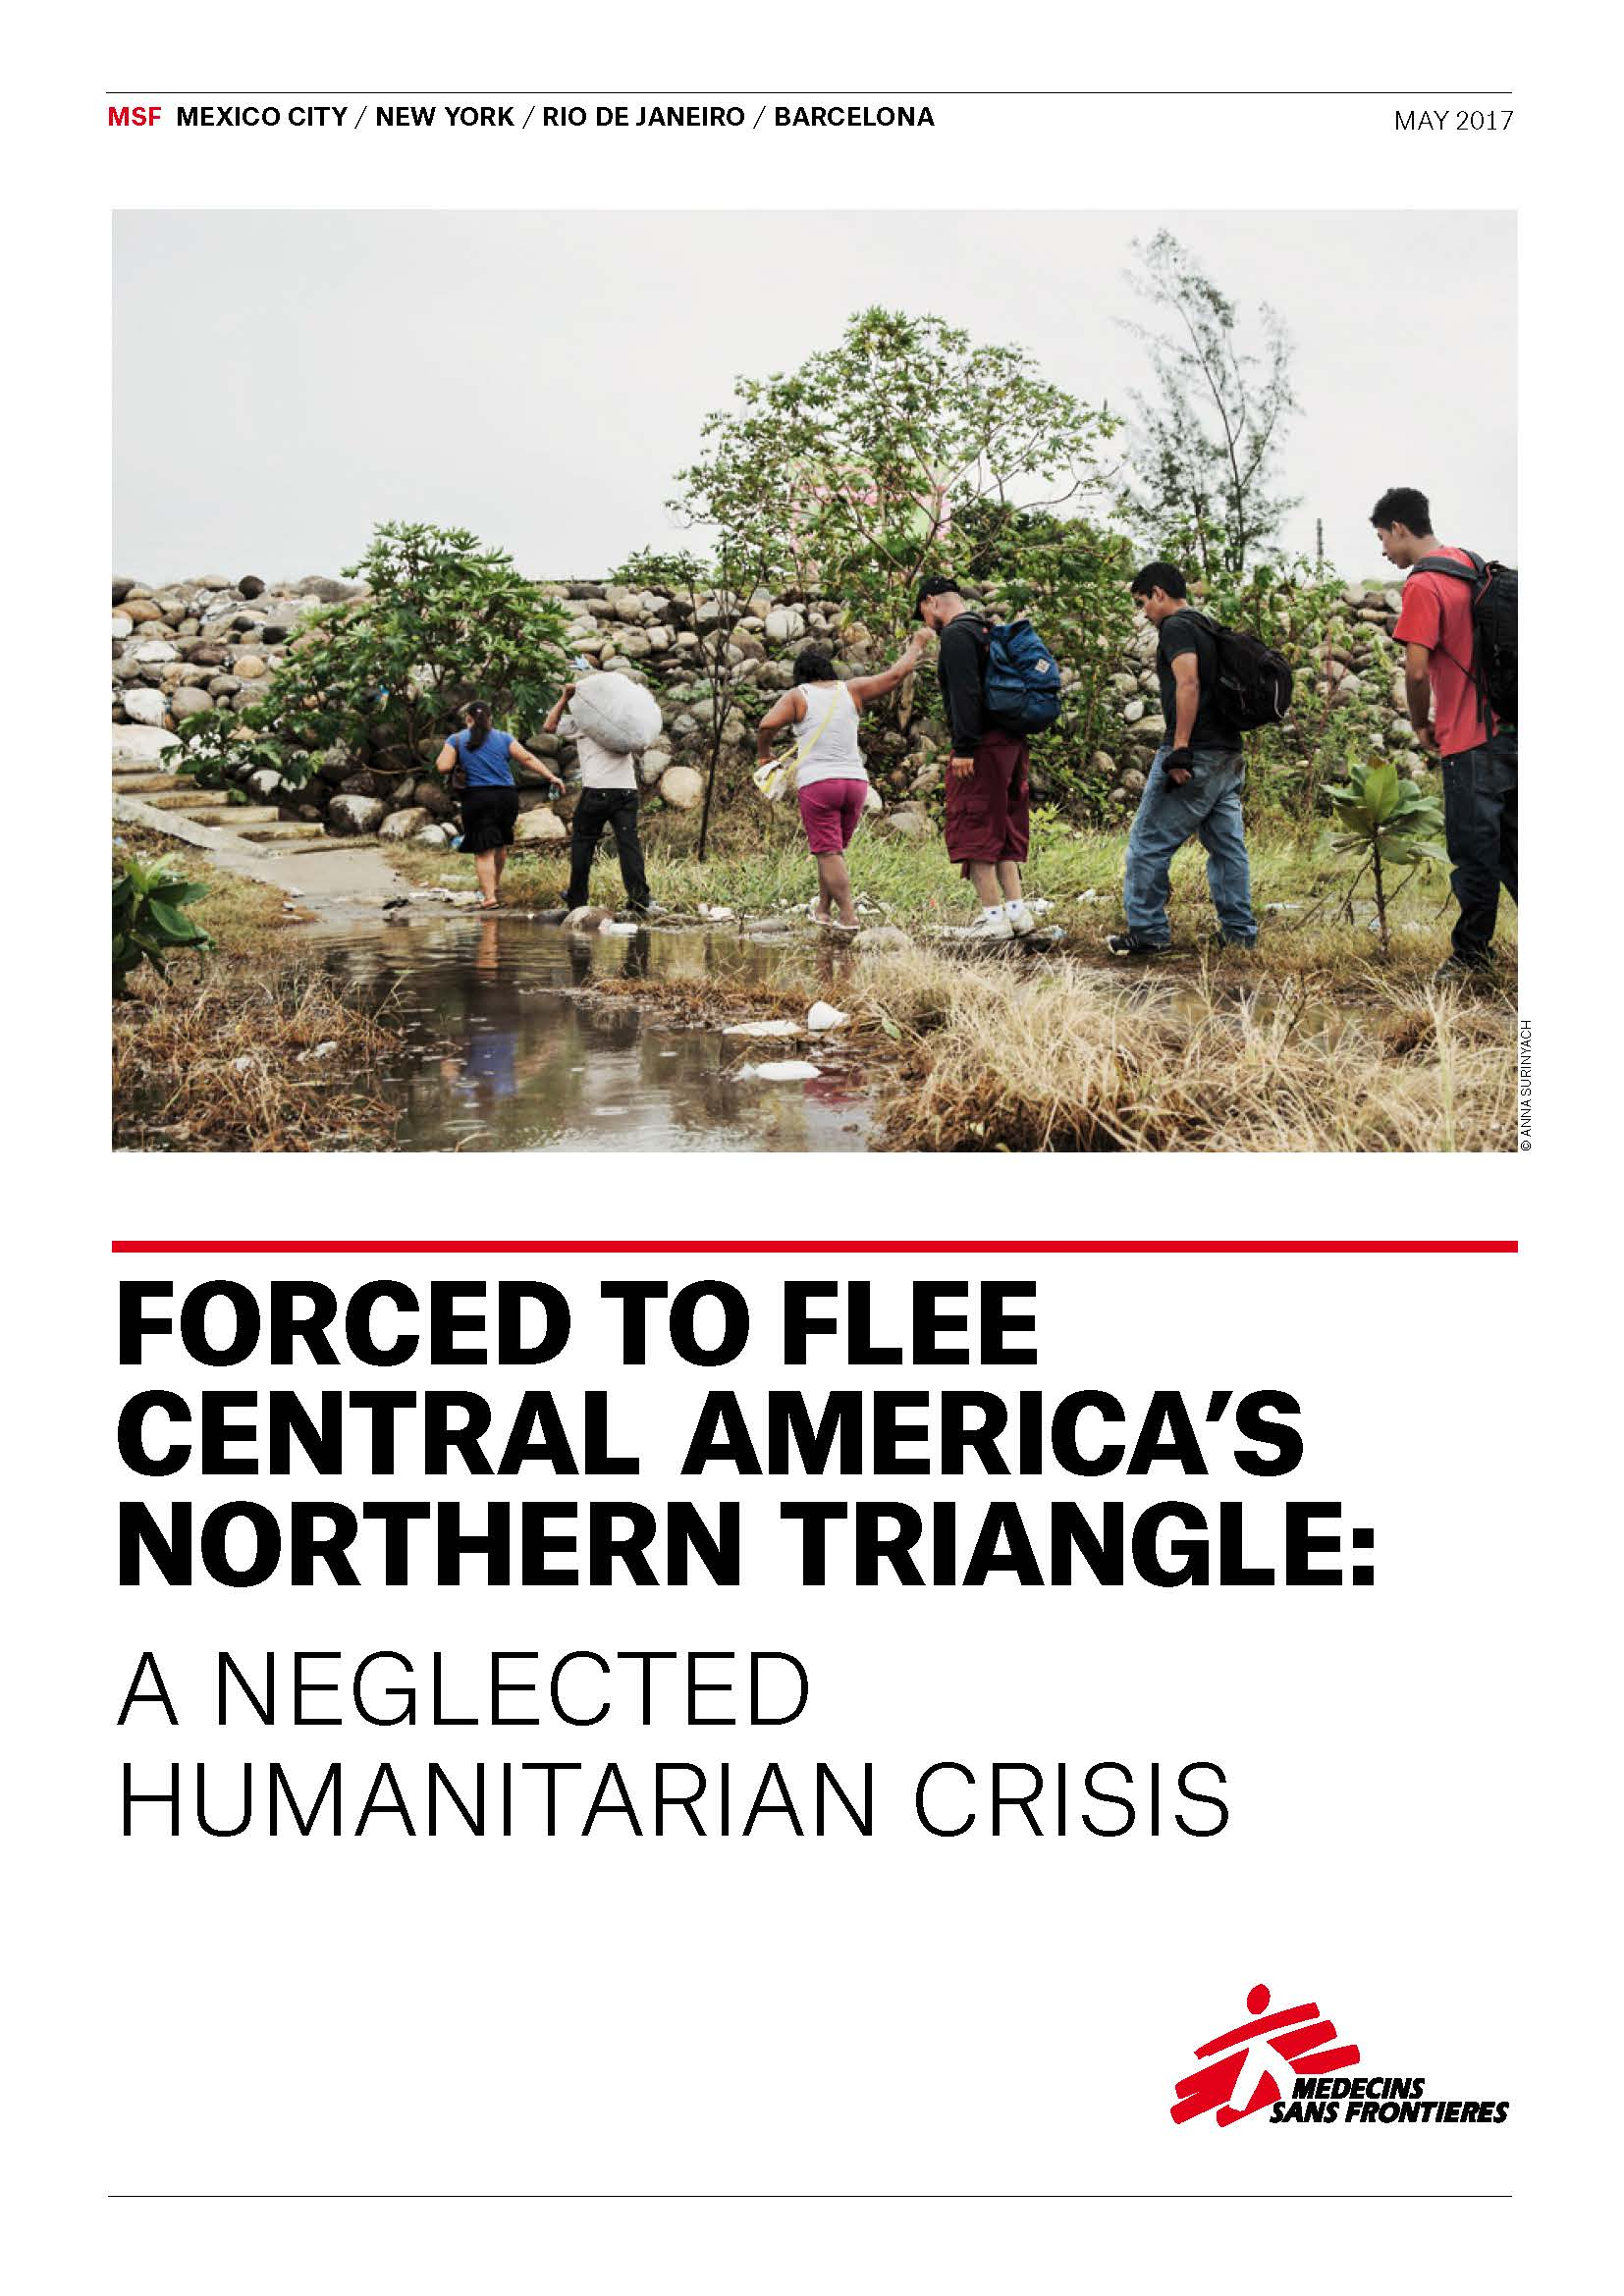 FORCED TO FLEE CENTRAL AMERICA'S NORTHERN TRIANGLE: A Neglected Humanitarian Crisis